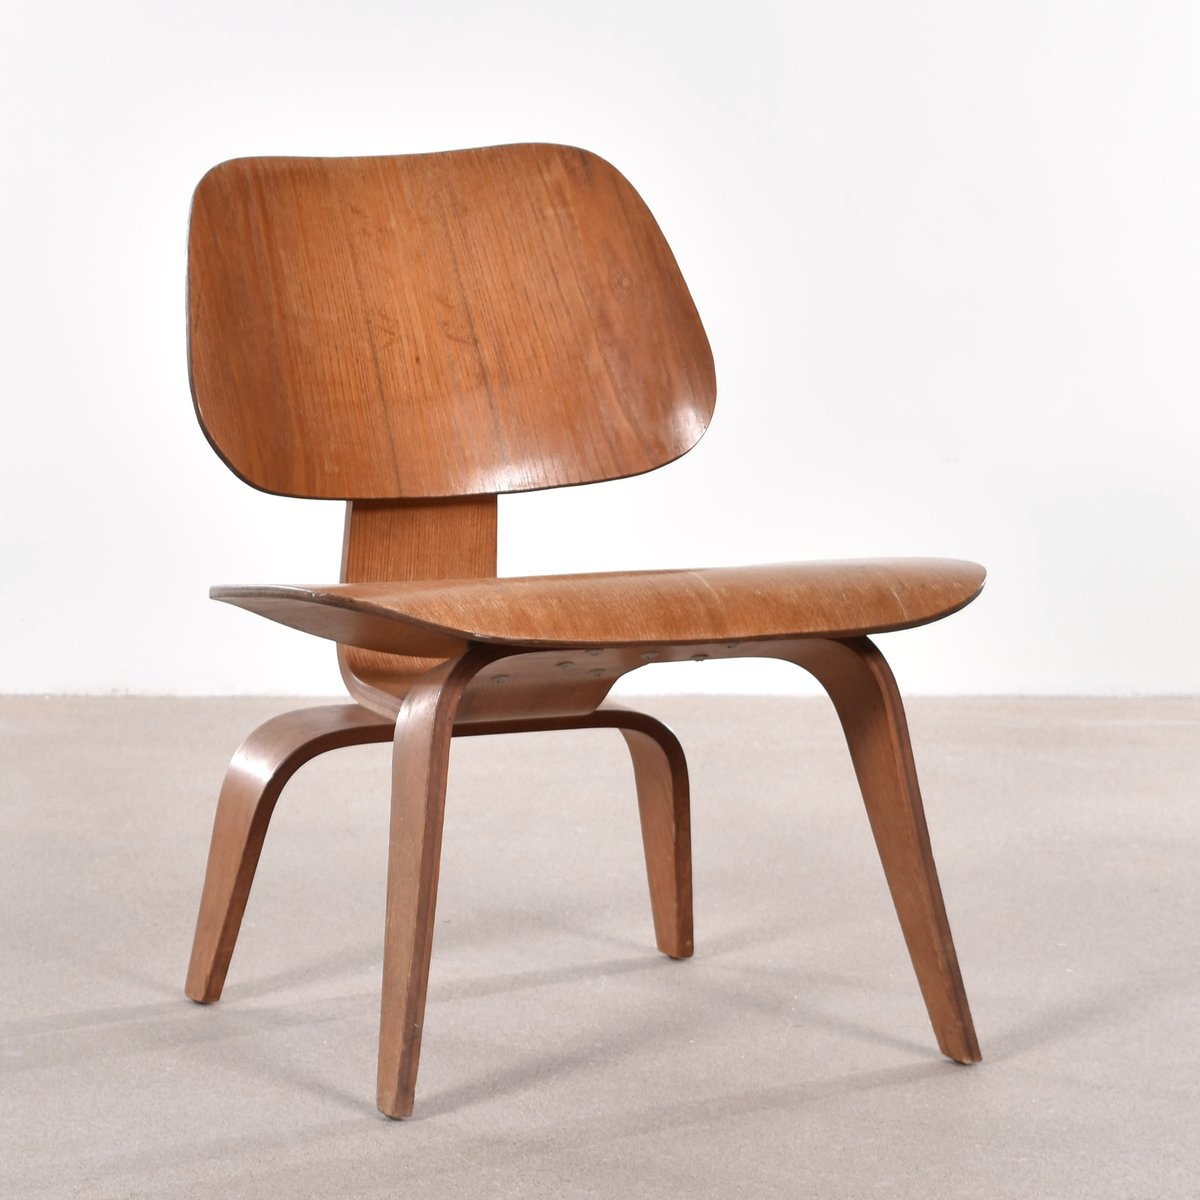 Charles Und Ray Eames American Lcw Ash Lounge Chair By Charles And Ray Eames For